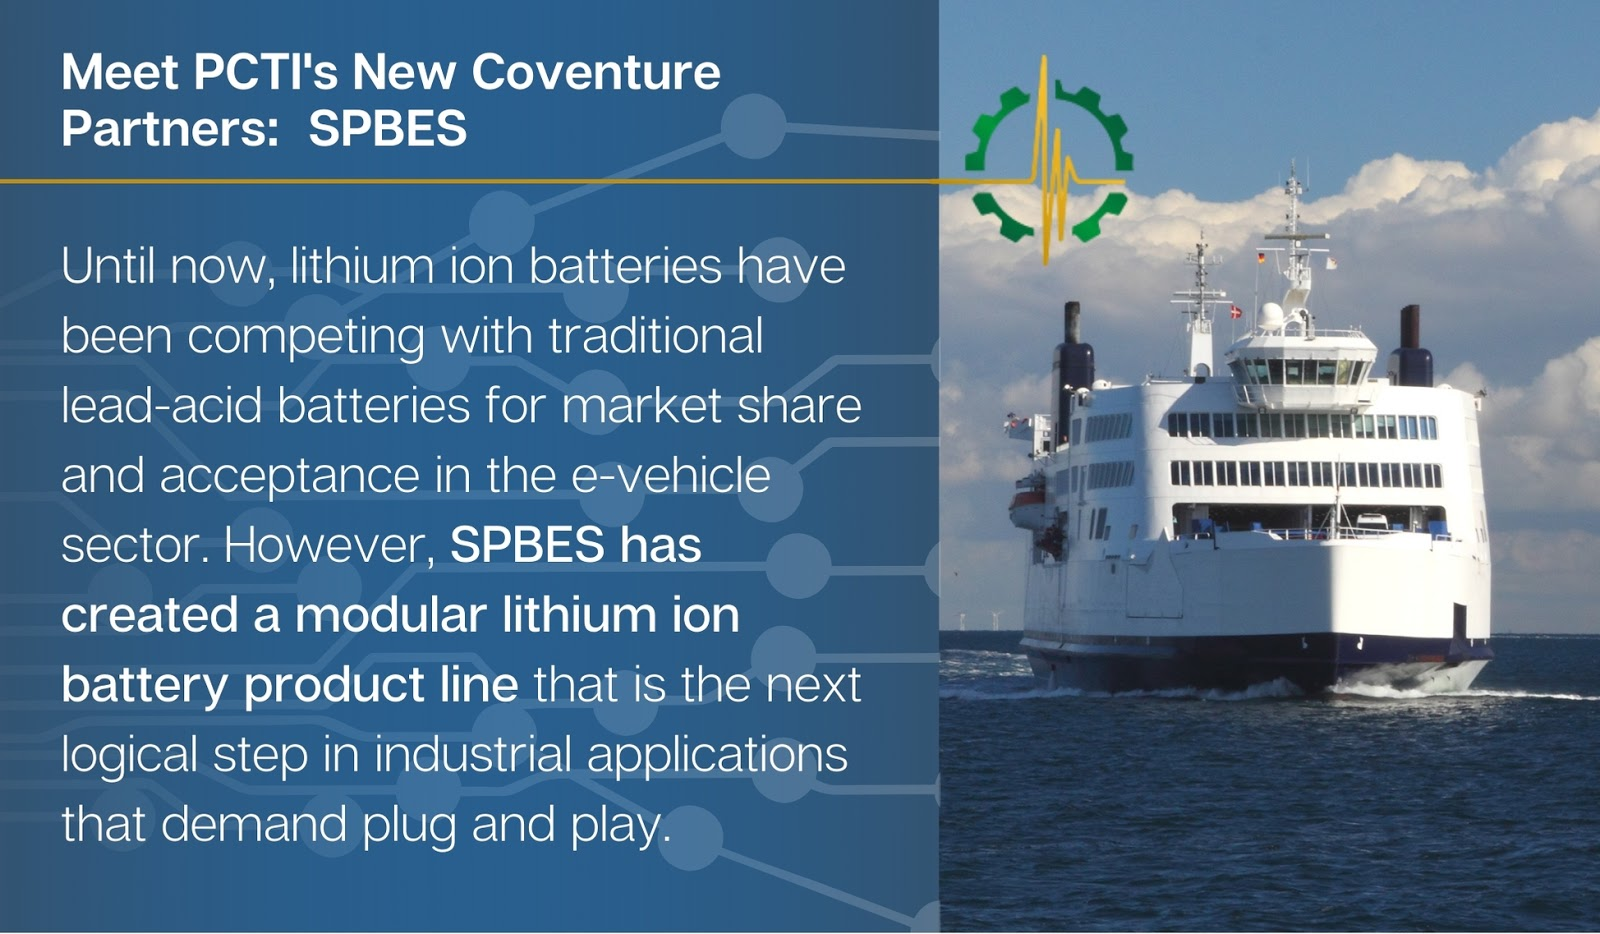 Conventure Partner: SPBES on lithium ion batteries